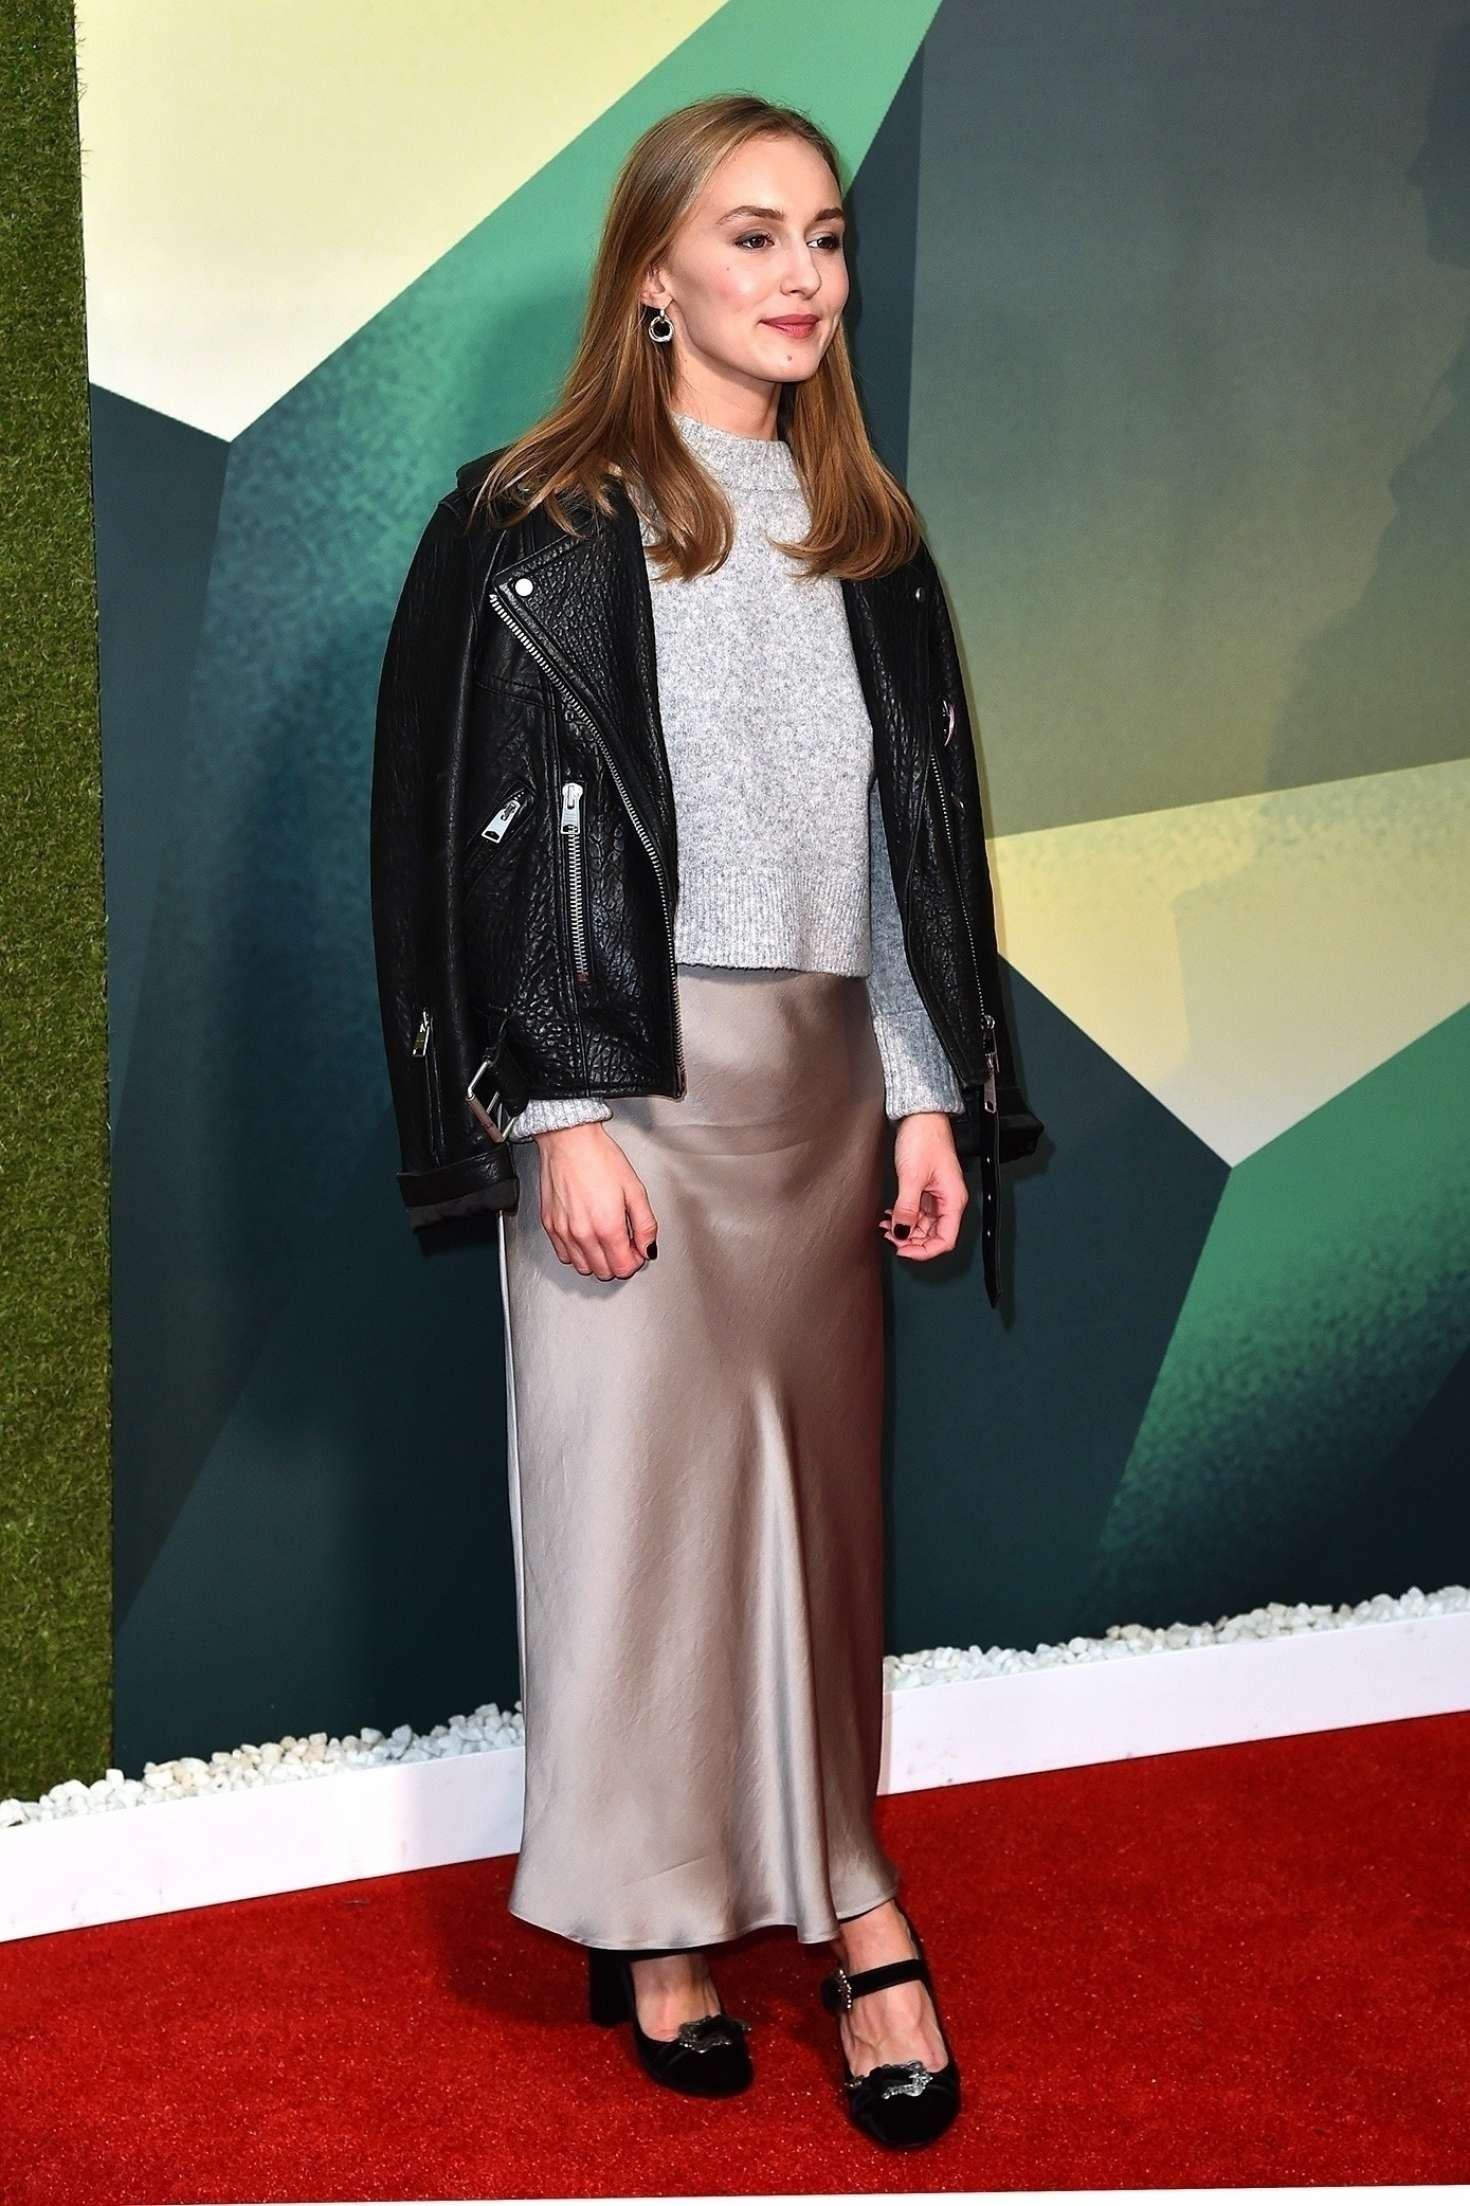 Bethany Muir 2018 : Bethany Muir: The Little Drummer Girl Premiere -10